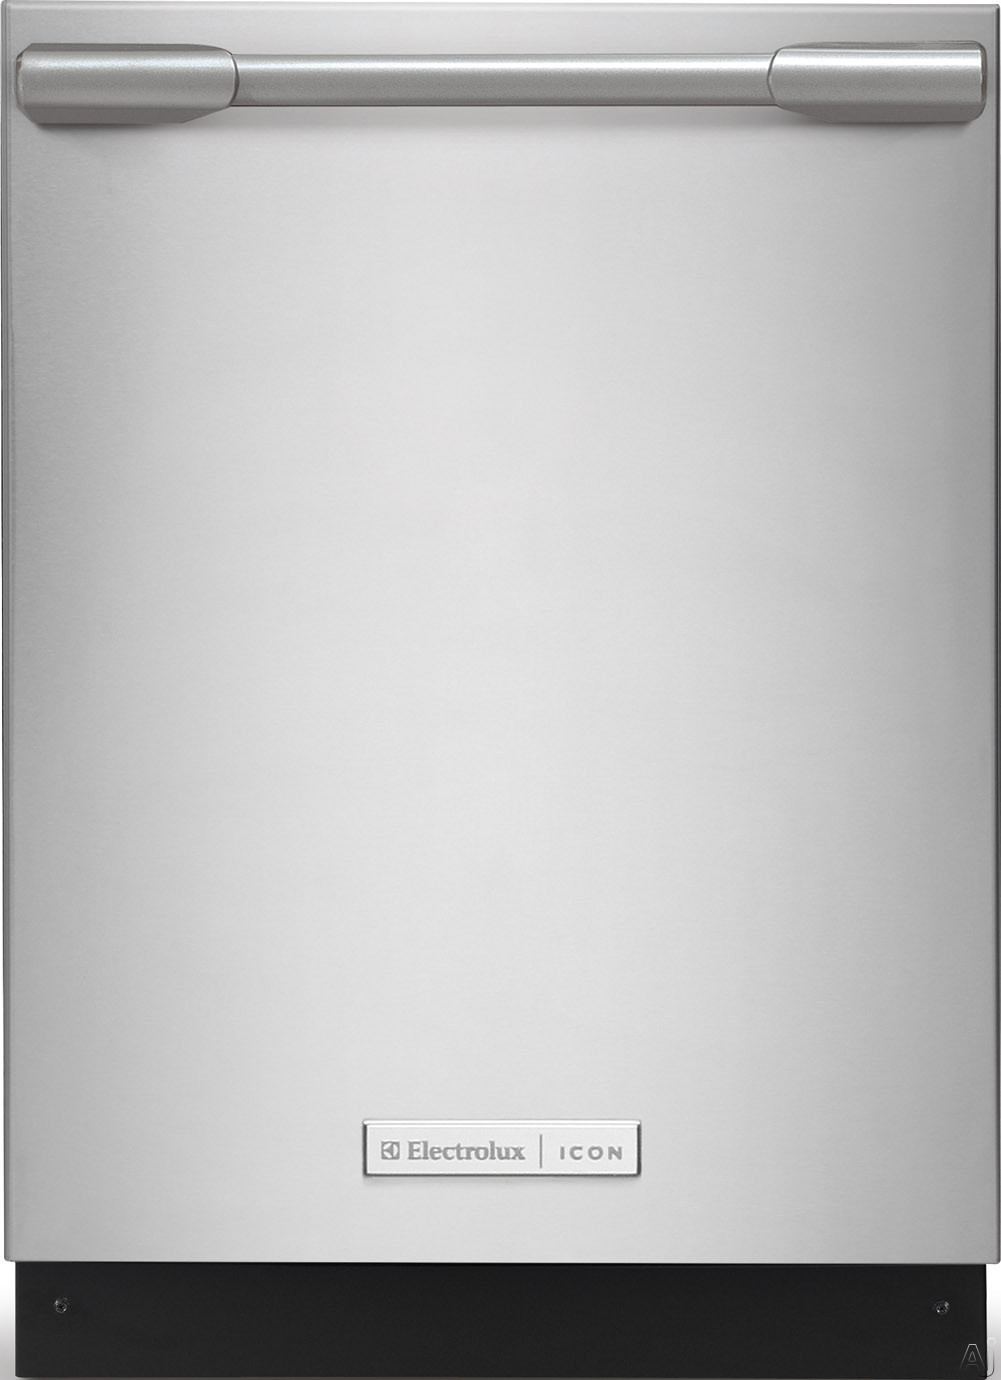 Electrolux ICON Professional E24ID74QPS Fully Integrated Dishwasher with 10 Wash Cycles, Sure-2-Fit Luxury-Glide Racking System, Adjustable Upper Rack, 3rd Rack, SatelliteSpray Arm, Stemware Grips, ENERGY STAR and Target Wash Jets E24ID74QPS